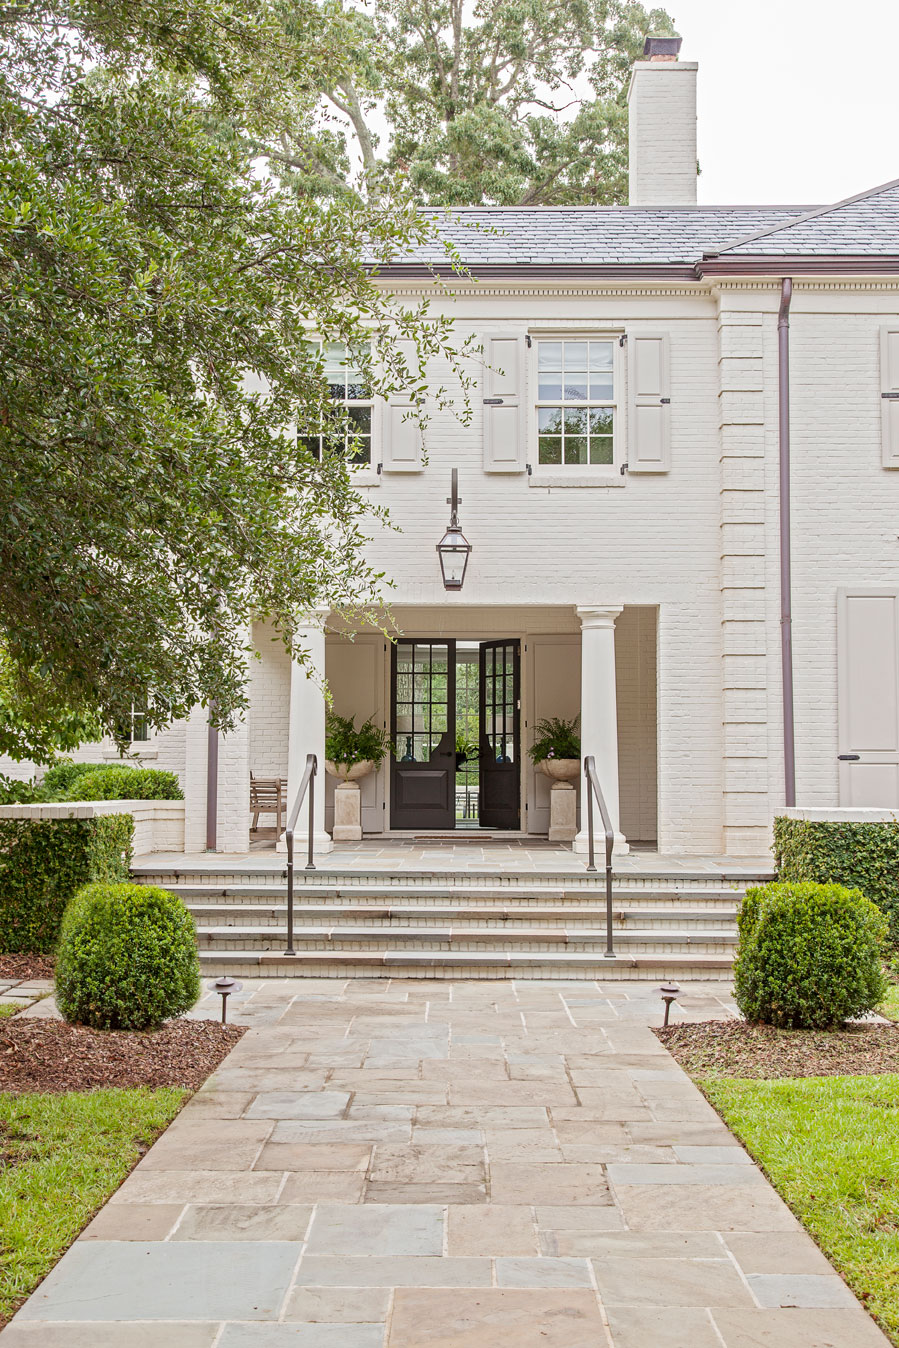 The original façade remains unchanged out of respect for the home's history.